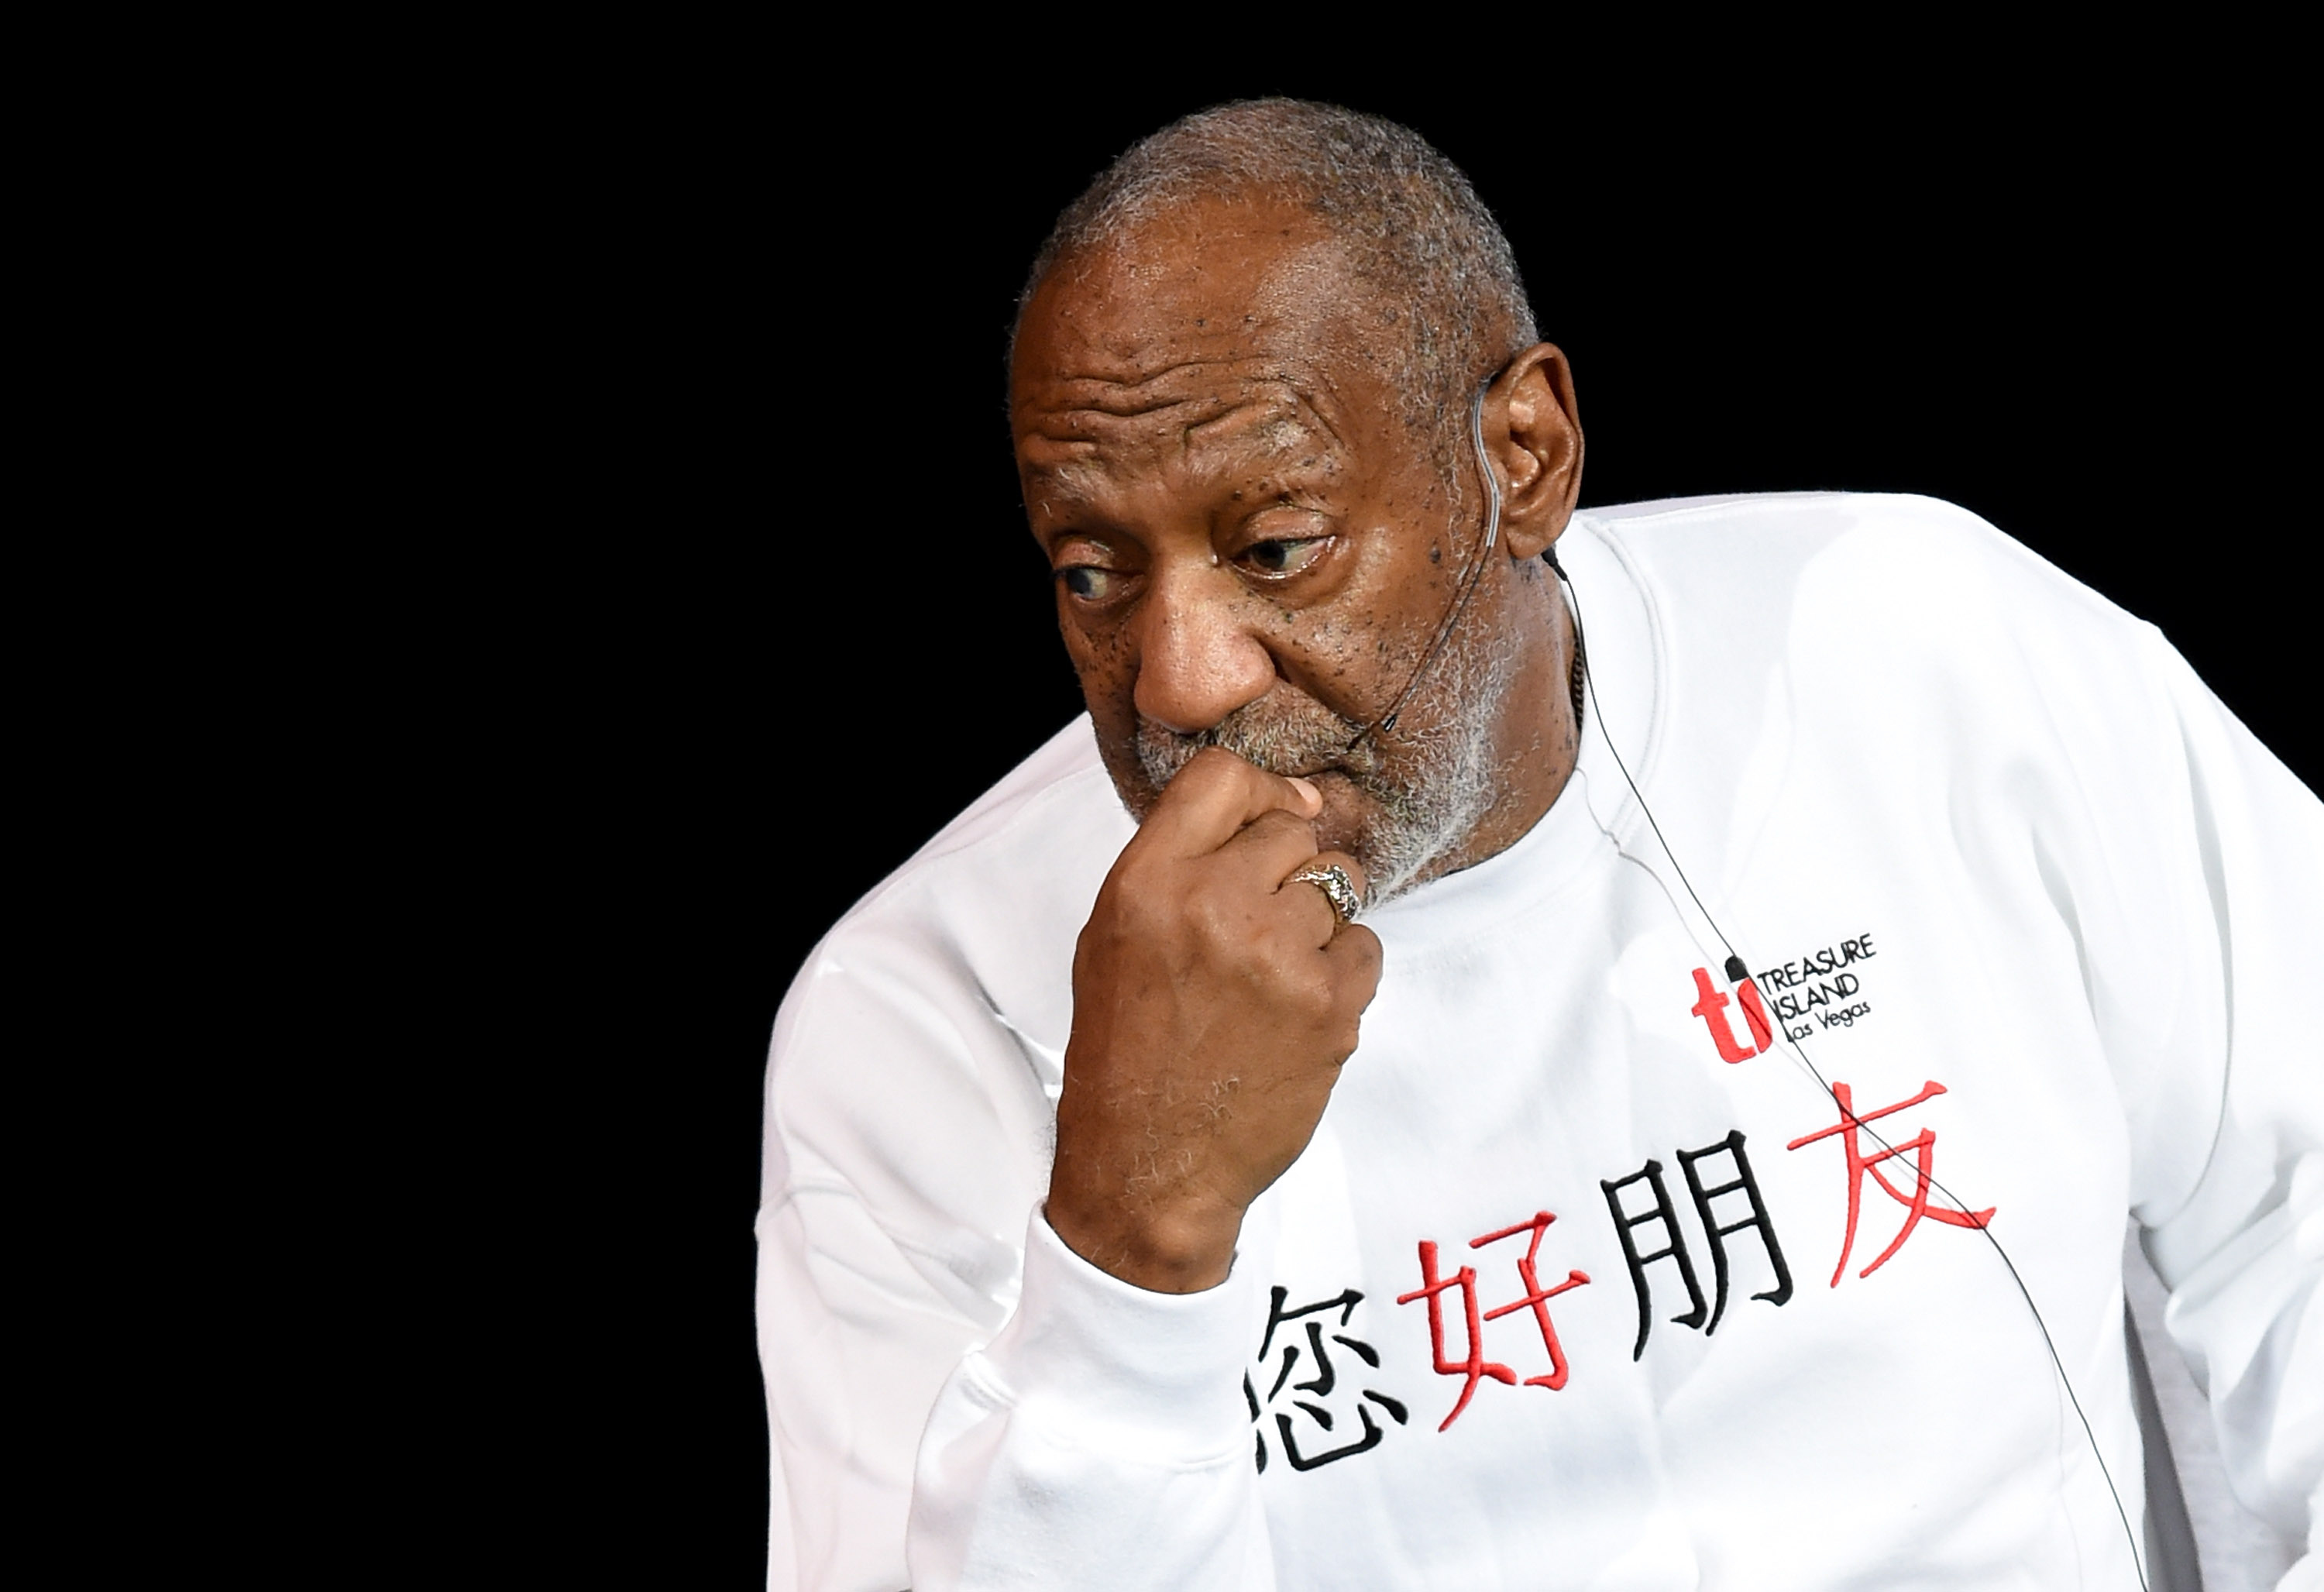 Bill Cosby timeline: From past allegations to the unfolding frenzy - CBS News